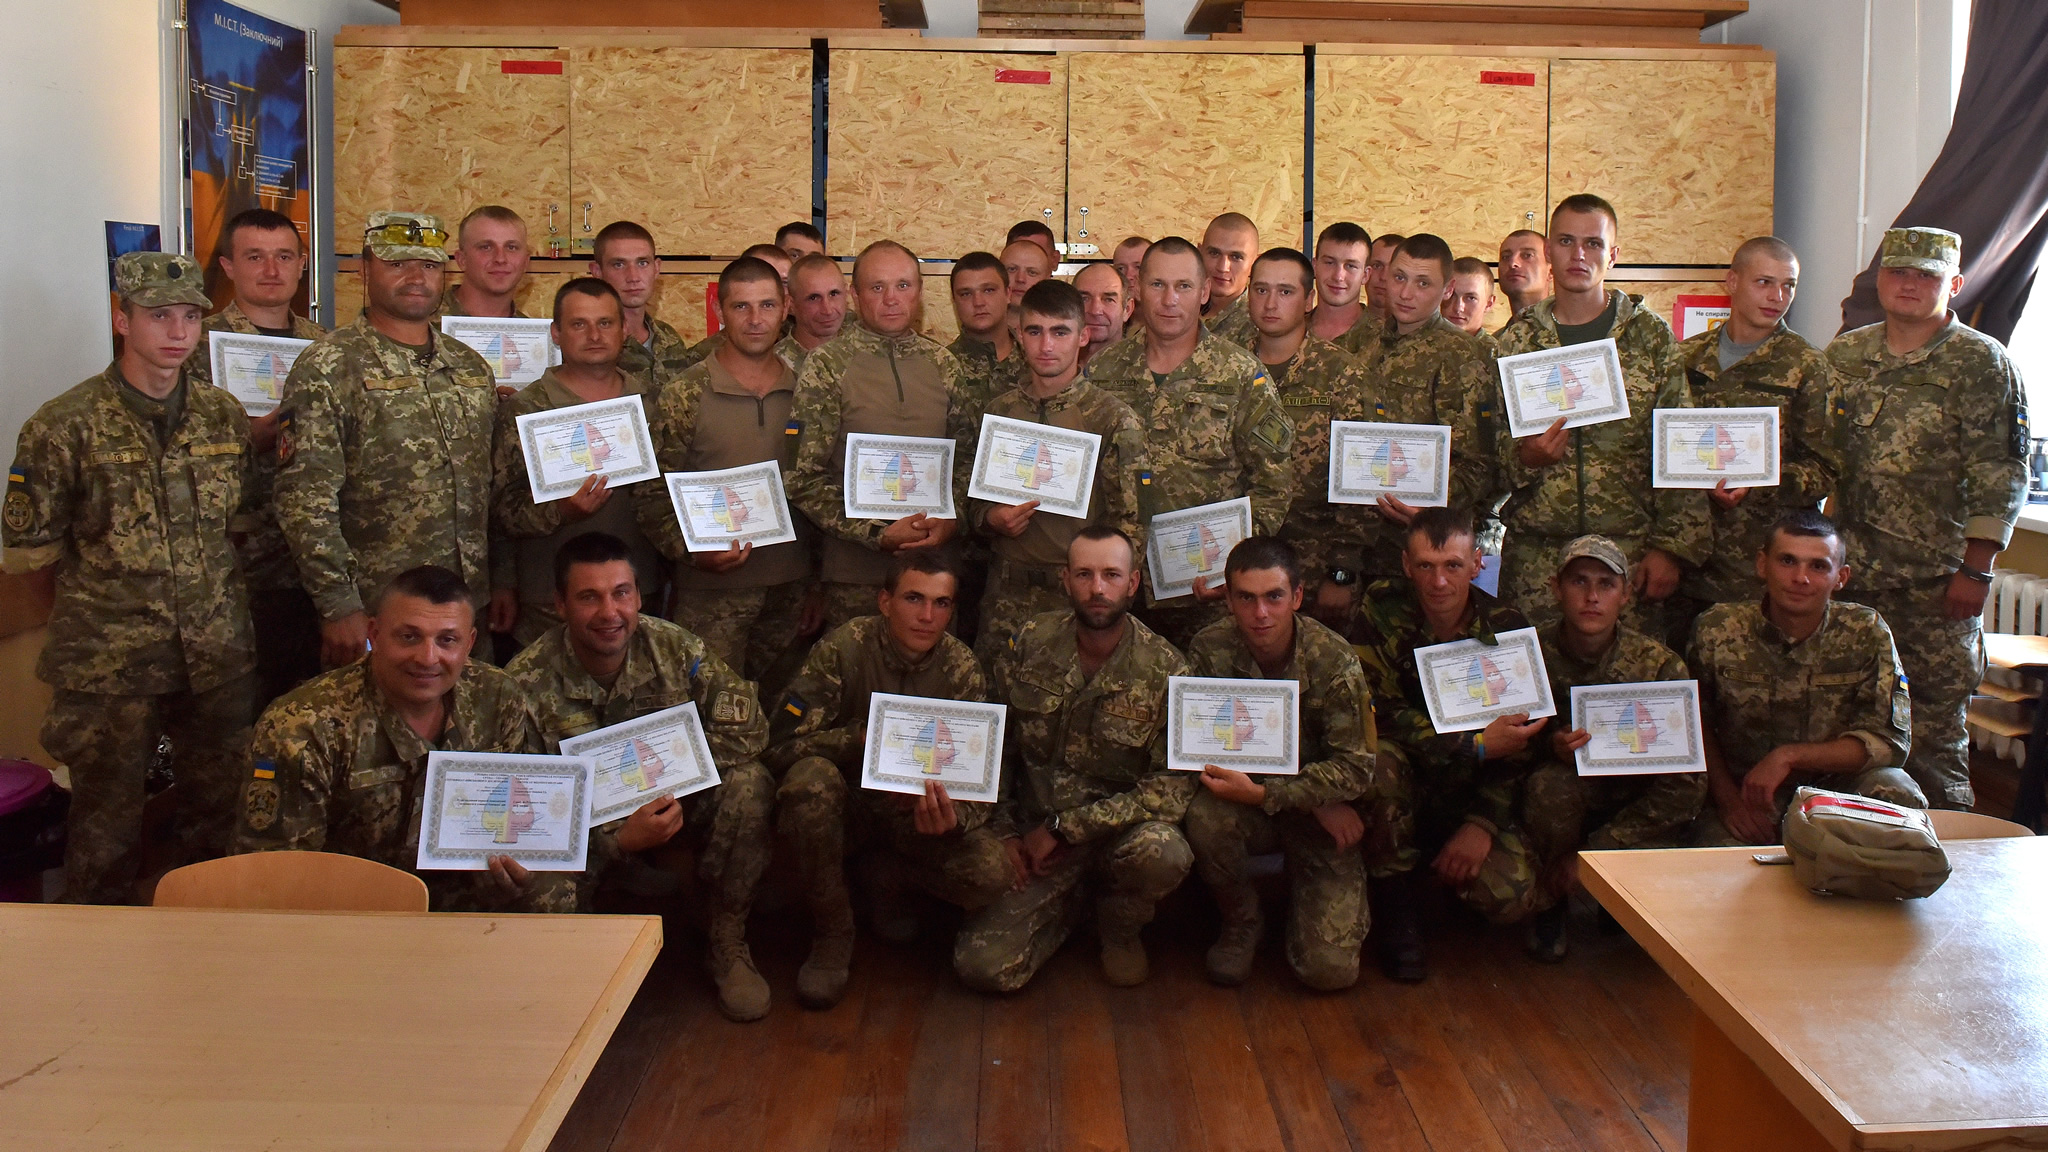 The Ukrainian instructors from the 184th Training Center and their students pose for a group picture holding their certificate confirming the completion of the Combat First Aid course in Yavoriv, on 3 August 2016 during Operation UNIFIER. The four instructors are part of the first group instructor qualified Ukrainians who are teaching the Canadian course to soldiers during the 55 day training block under the supervision of members of Joint Task Force Ukraine. (Photo : Capt J.P. Coulombe, JTF-U PAO)